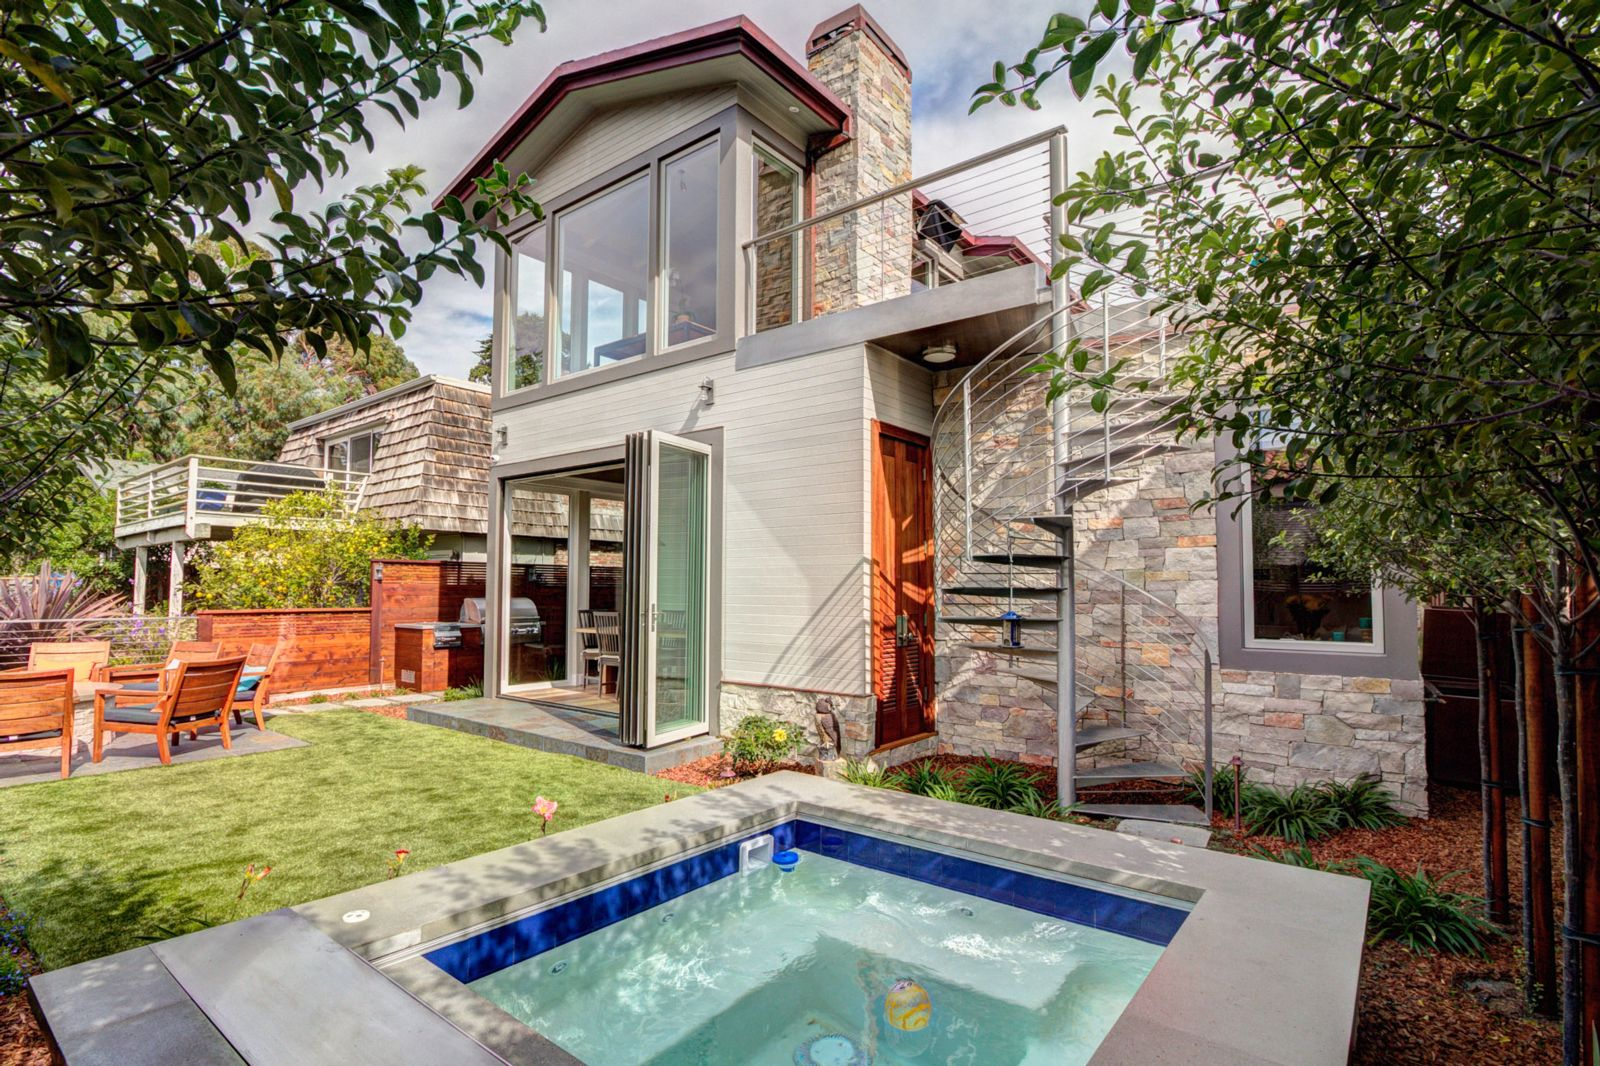 transforming a 1950 bungalow to a luxurious beach cottage the